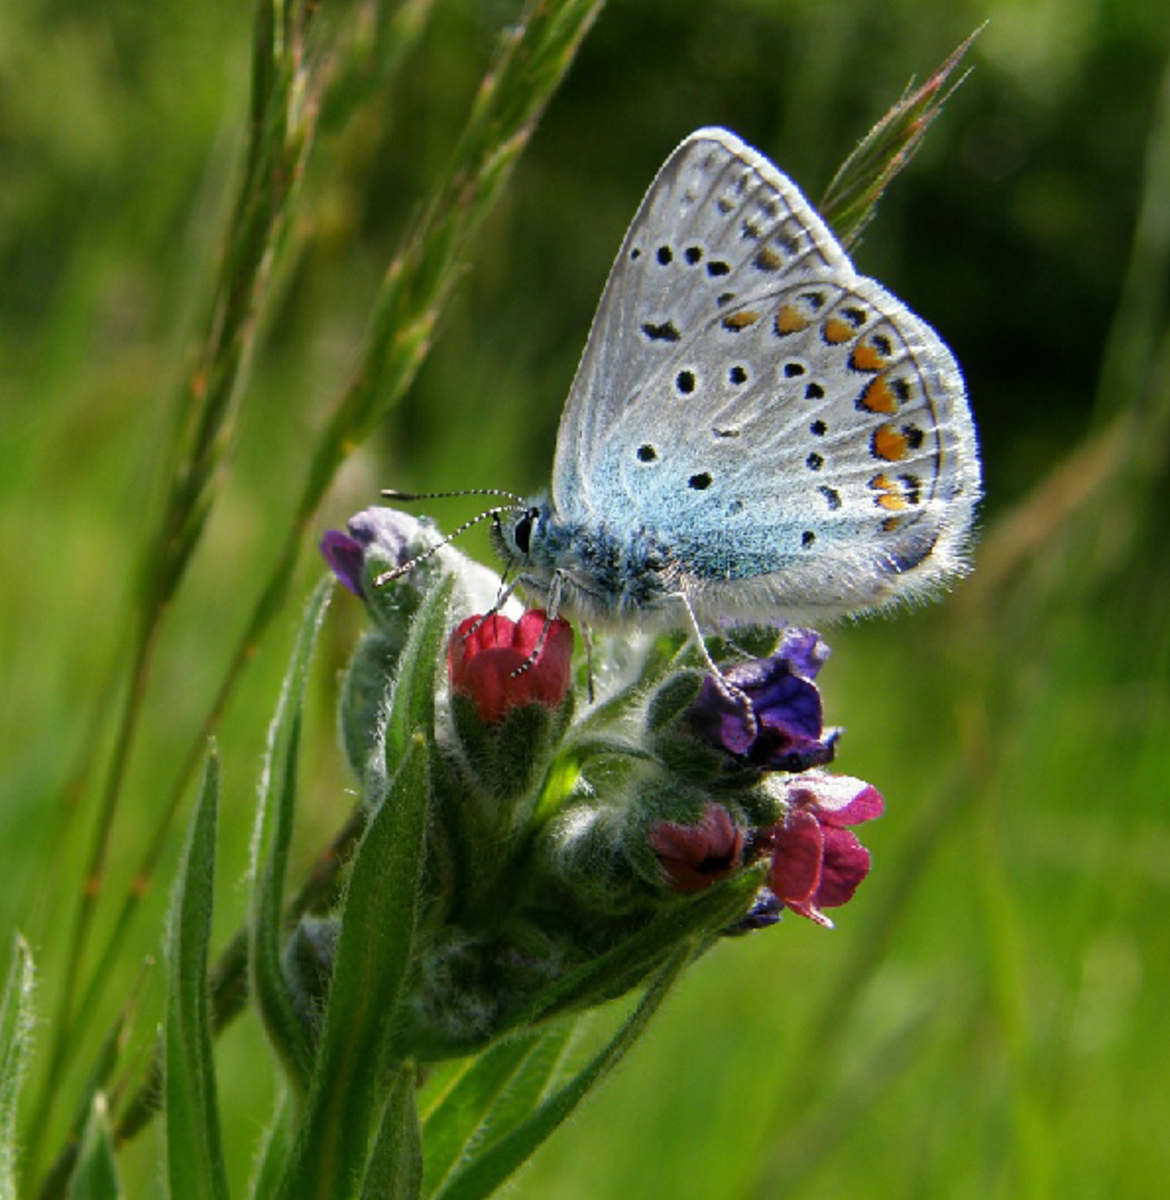 White Butterfly on Flower Buds